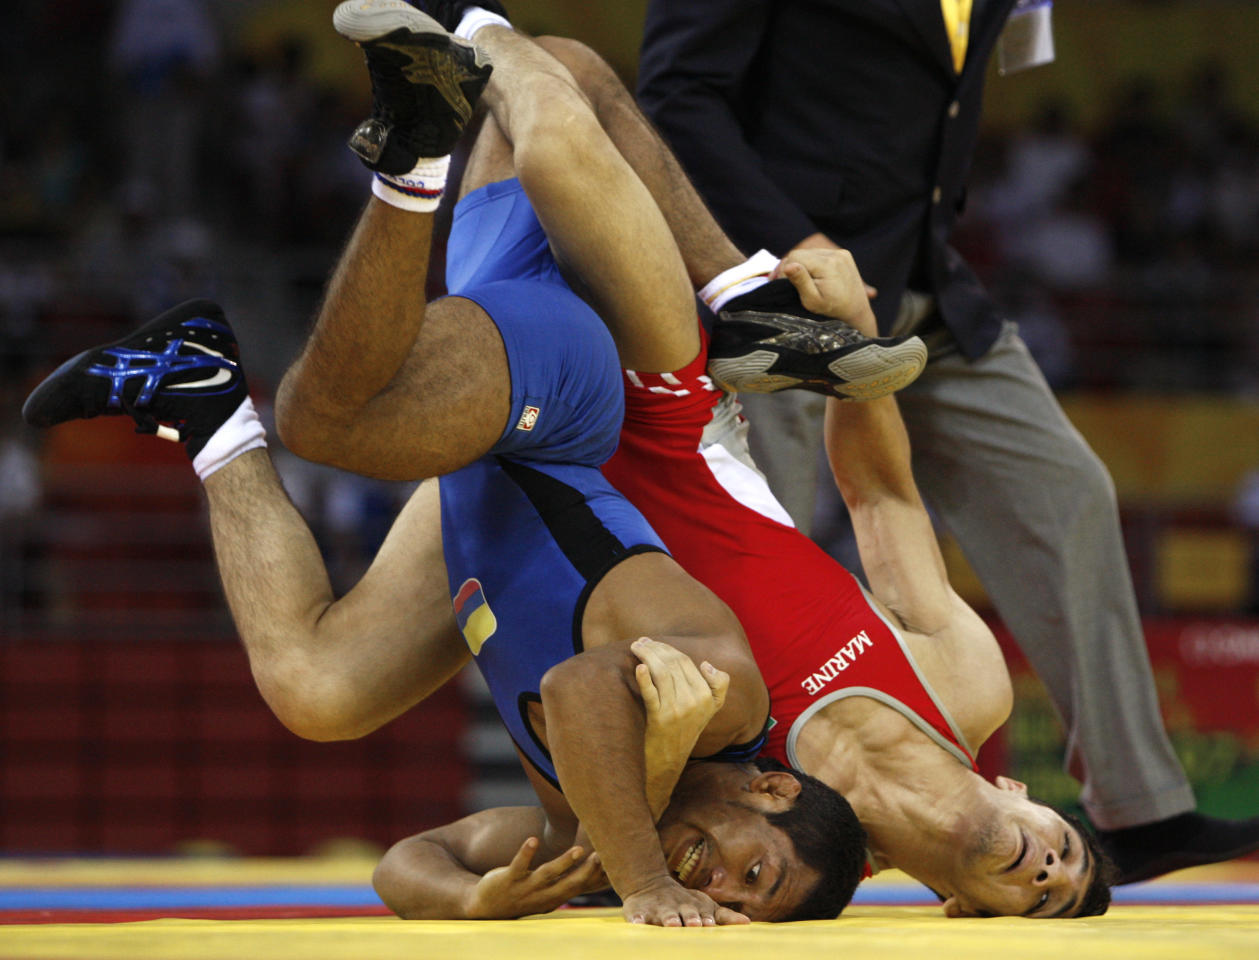 Abbas Dabbaghi, of Iran, in red, wrestles Fredy Serrano, of Columbia, in 55 kilogram category of men's freestyle wrestling competition of the Beijing 2008 Olympics in Beijing, Tuesday, Aug. 19, 2008.  (AP Photo/Saurabh Das )